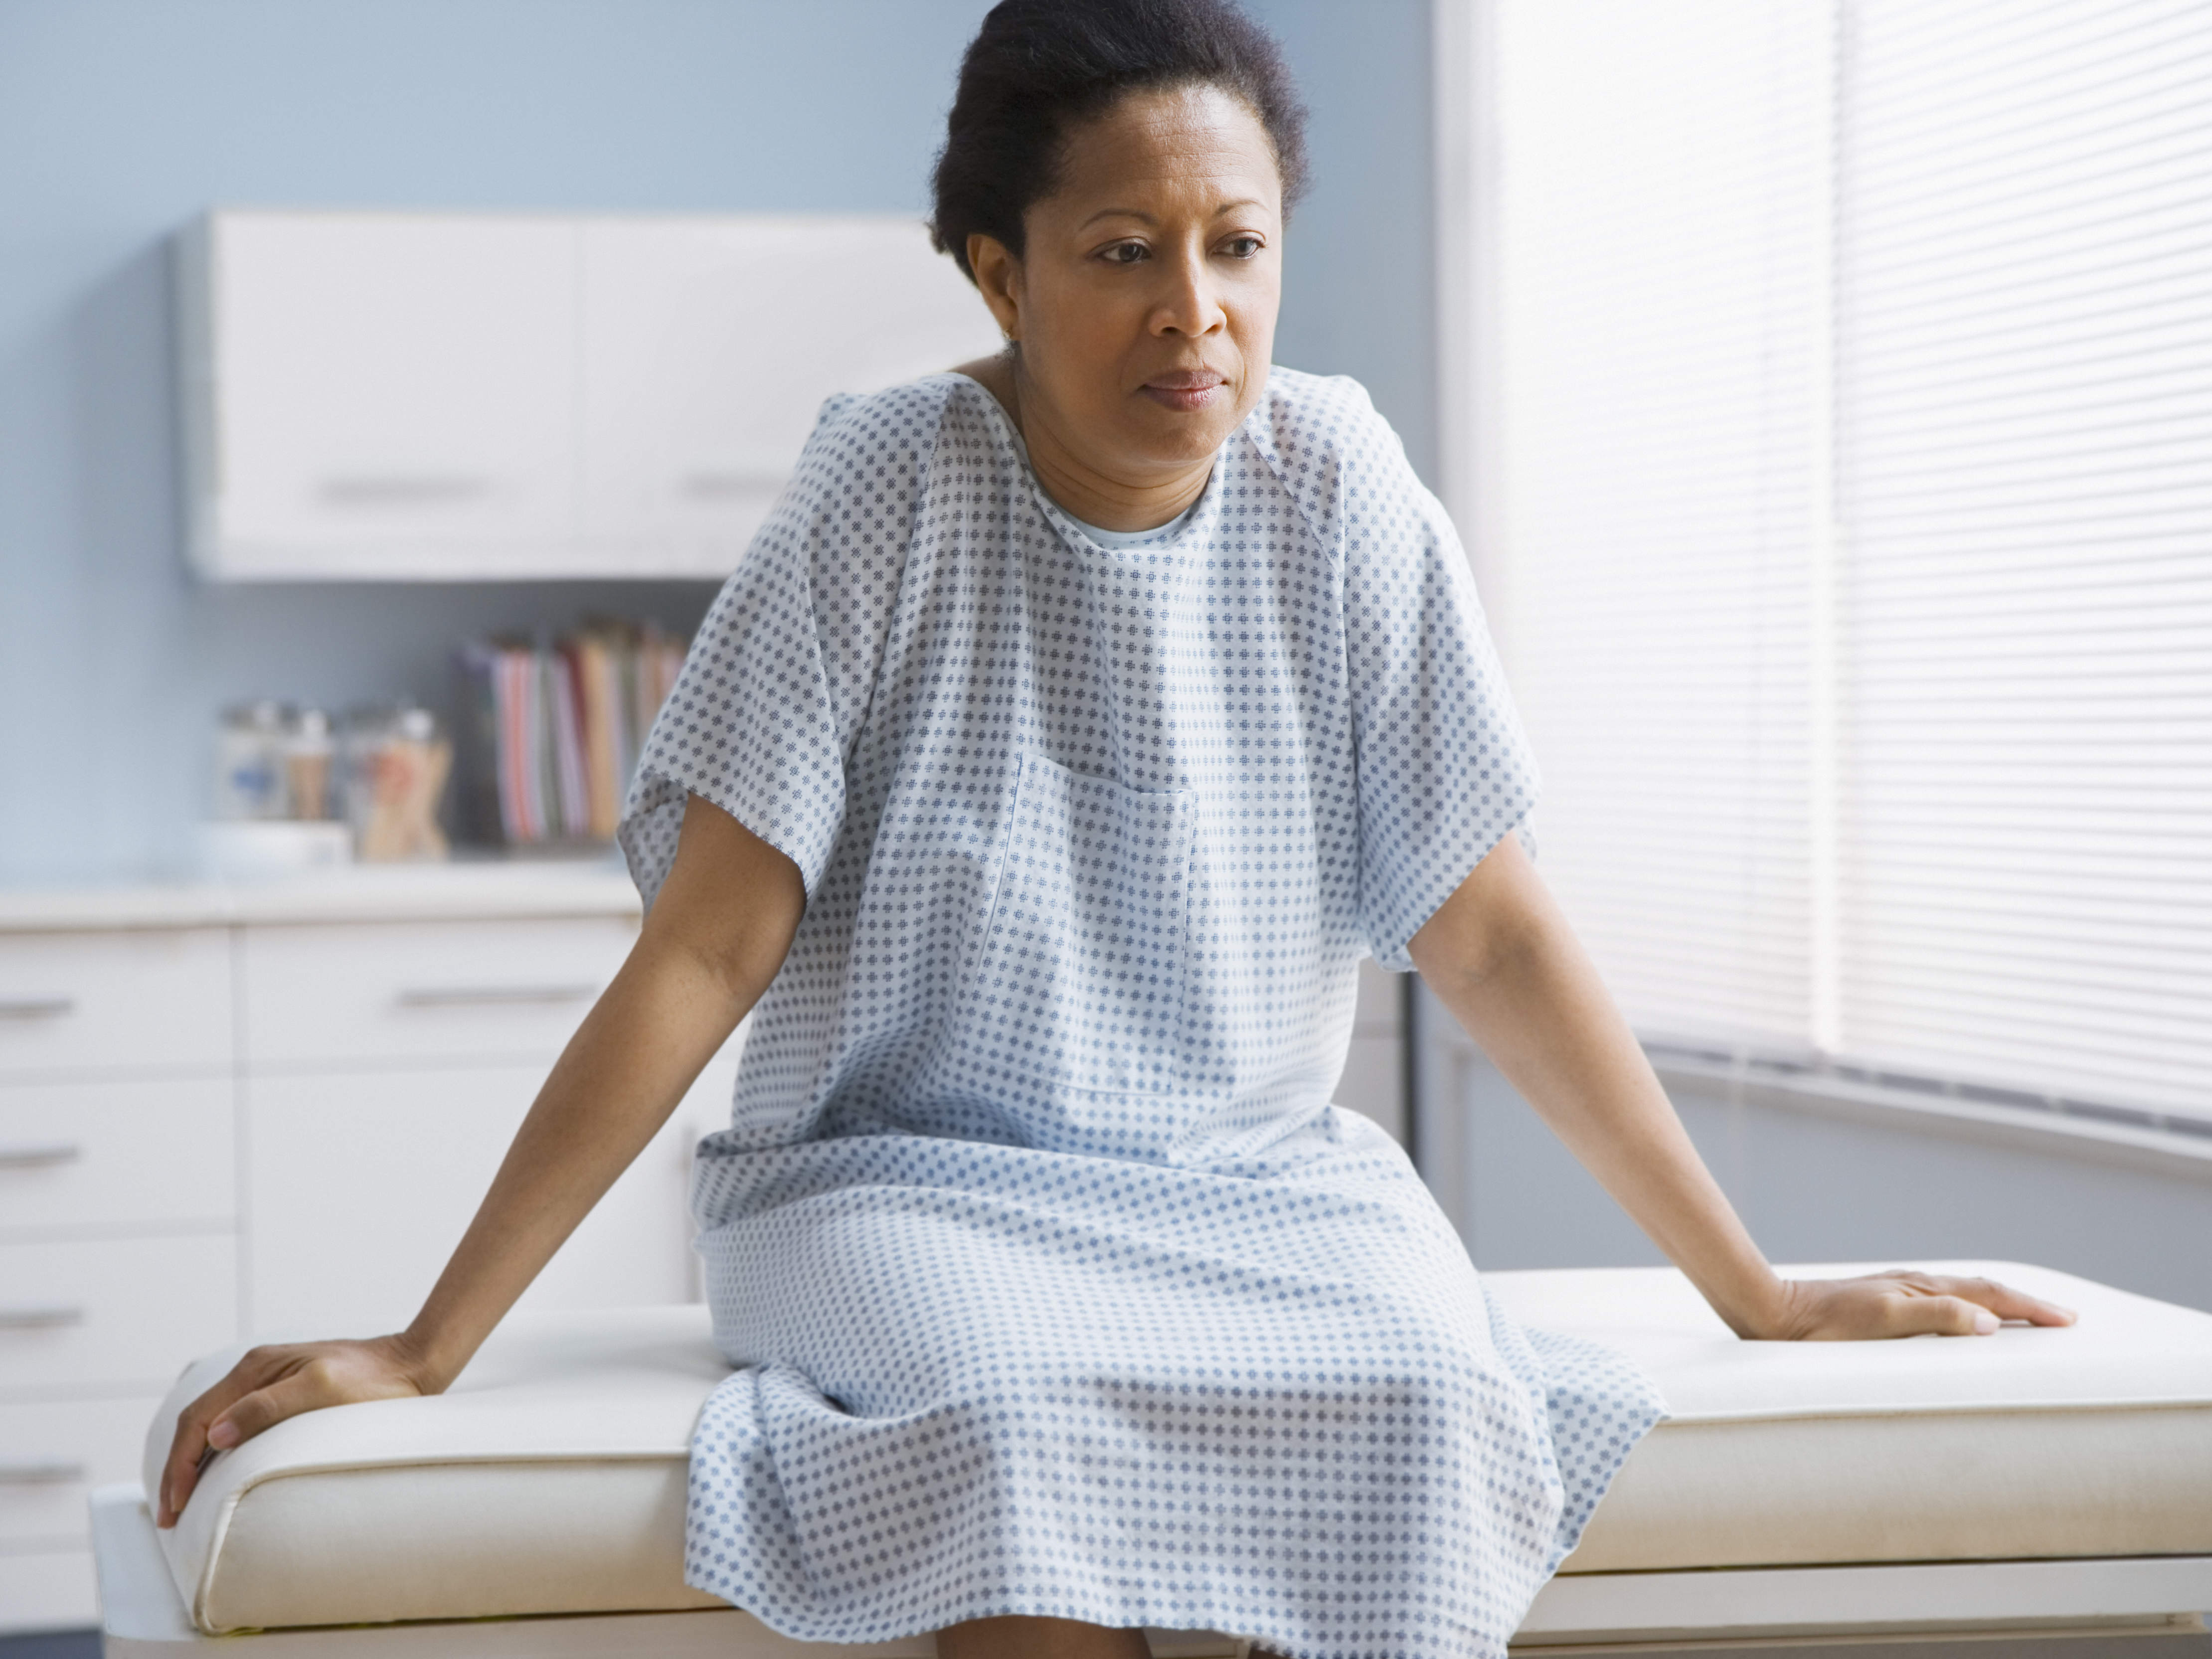 woman in medical gown on doctor exam table